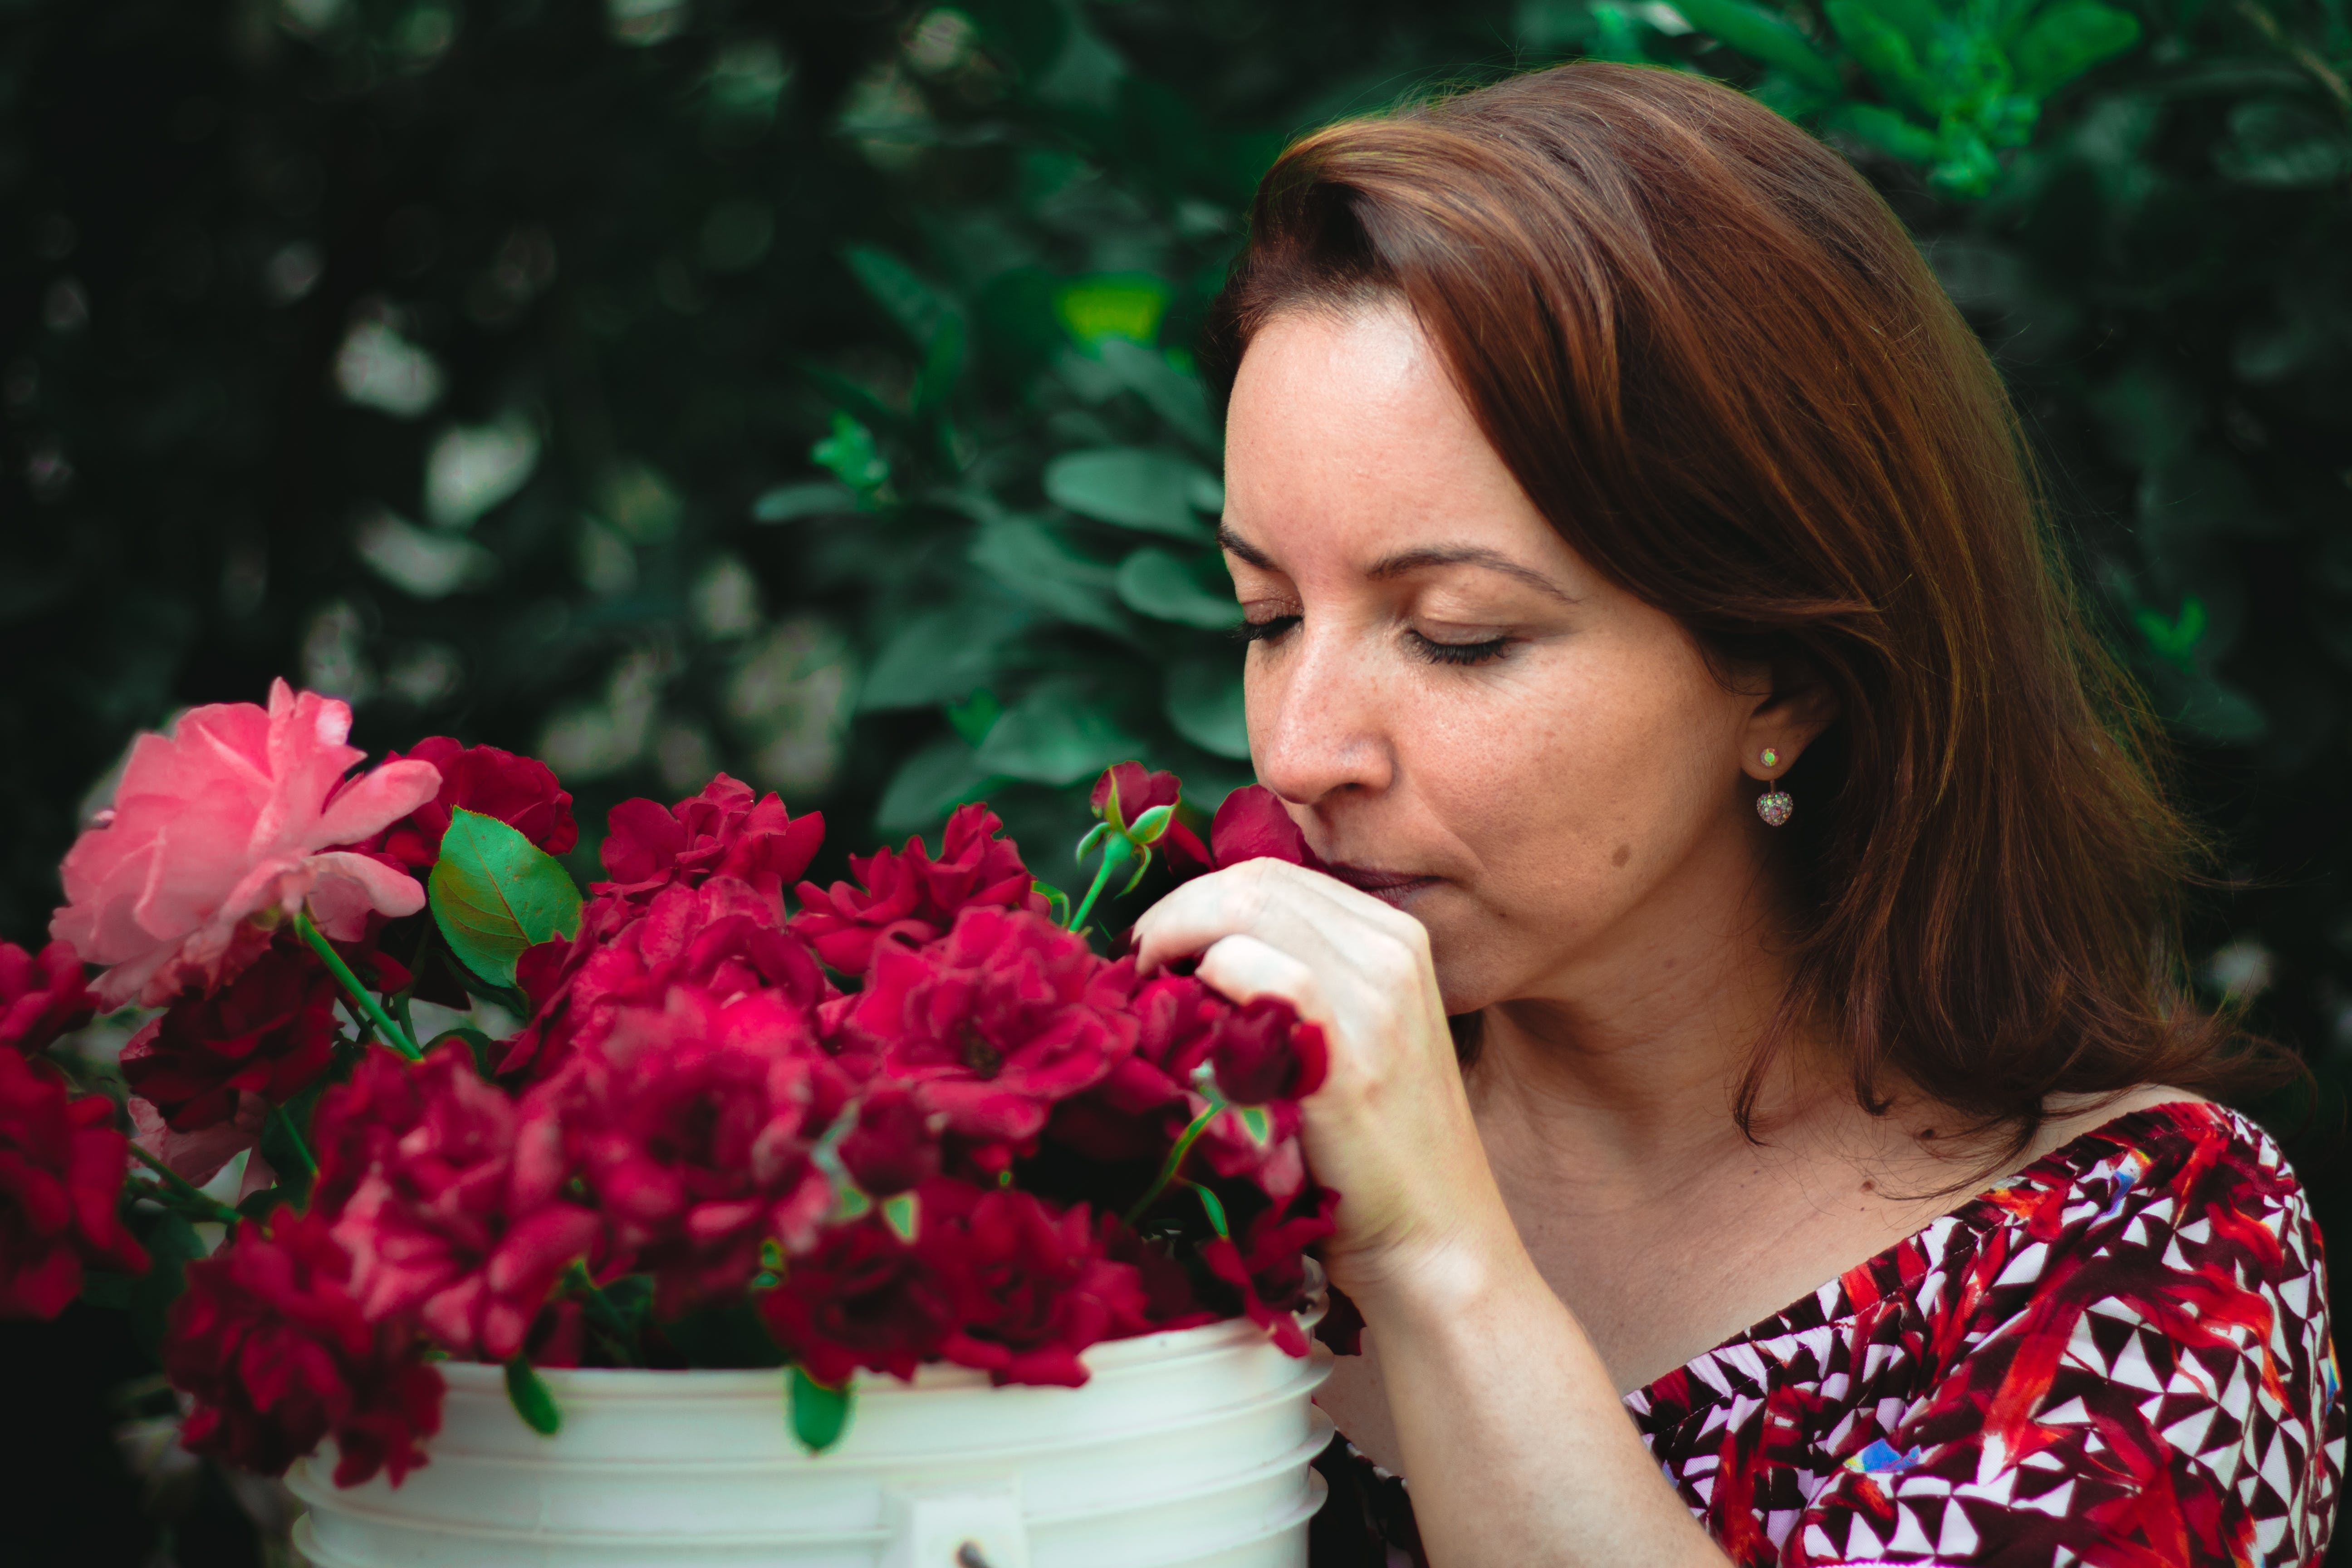 Free stock photo of woman, flowers, smelling